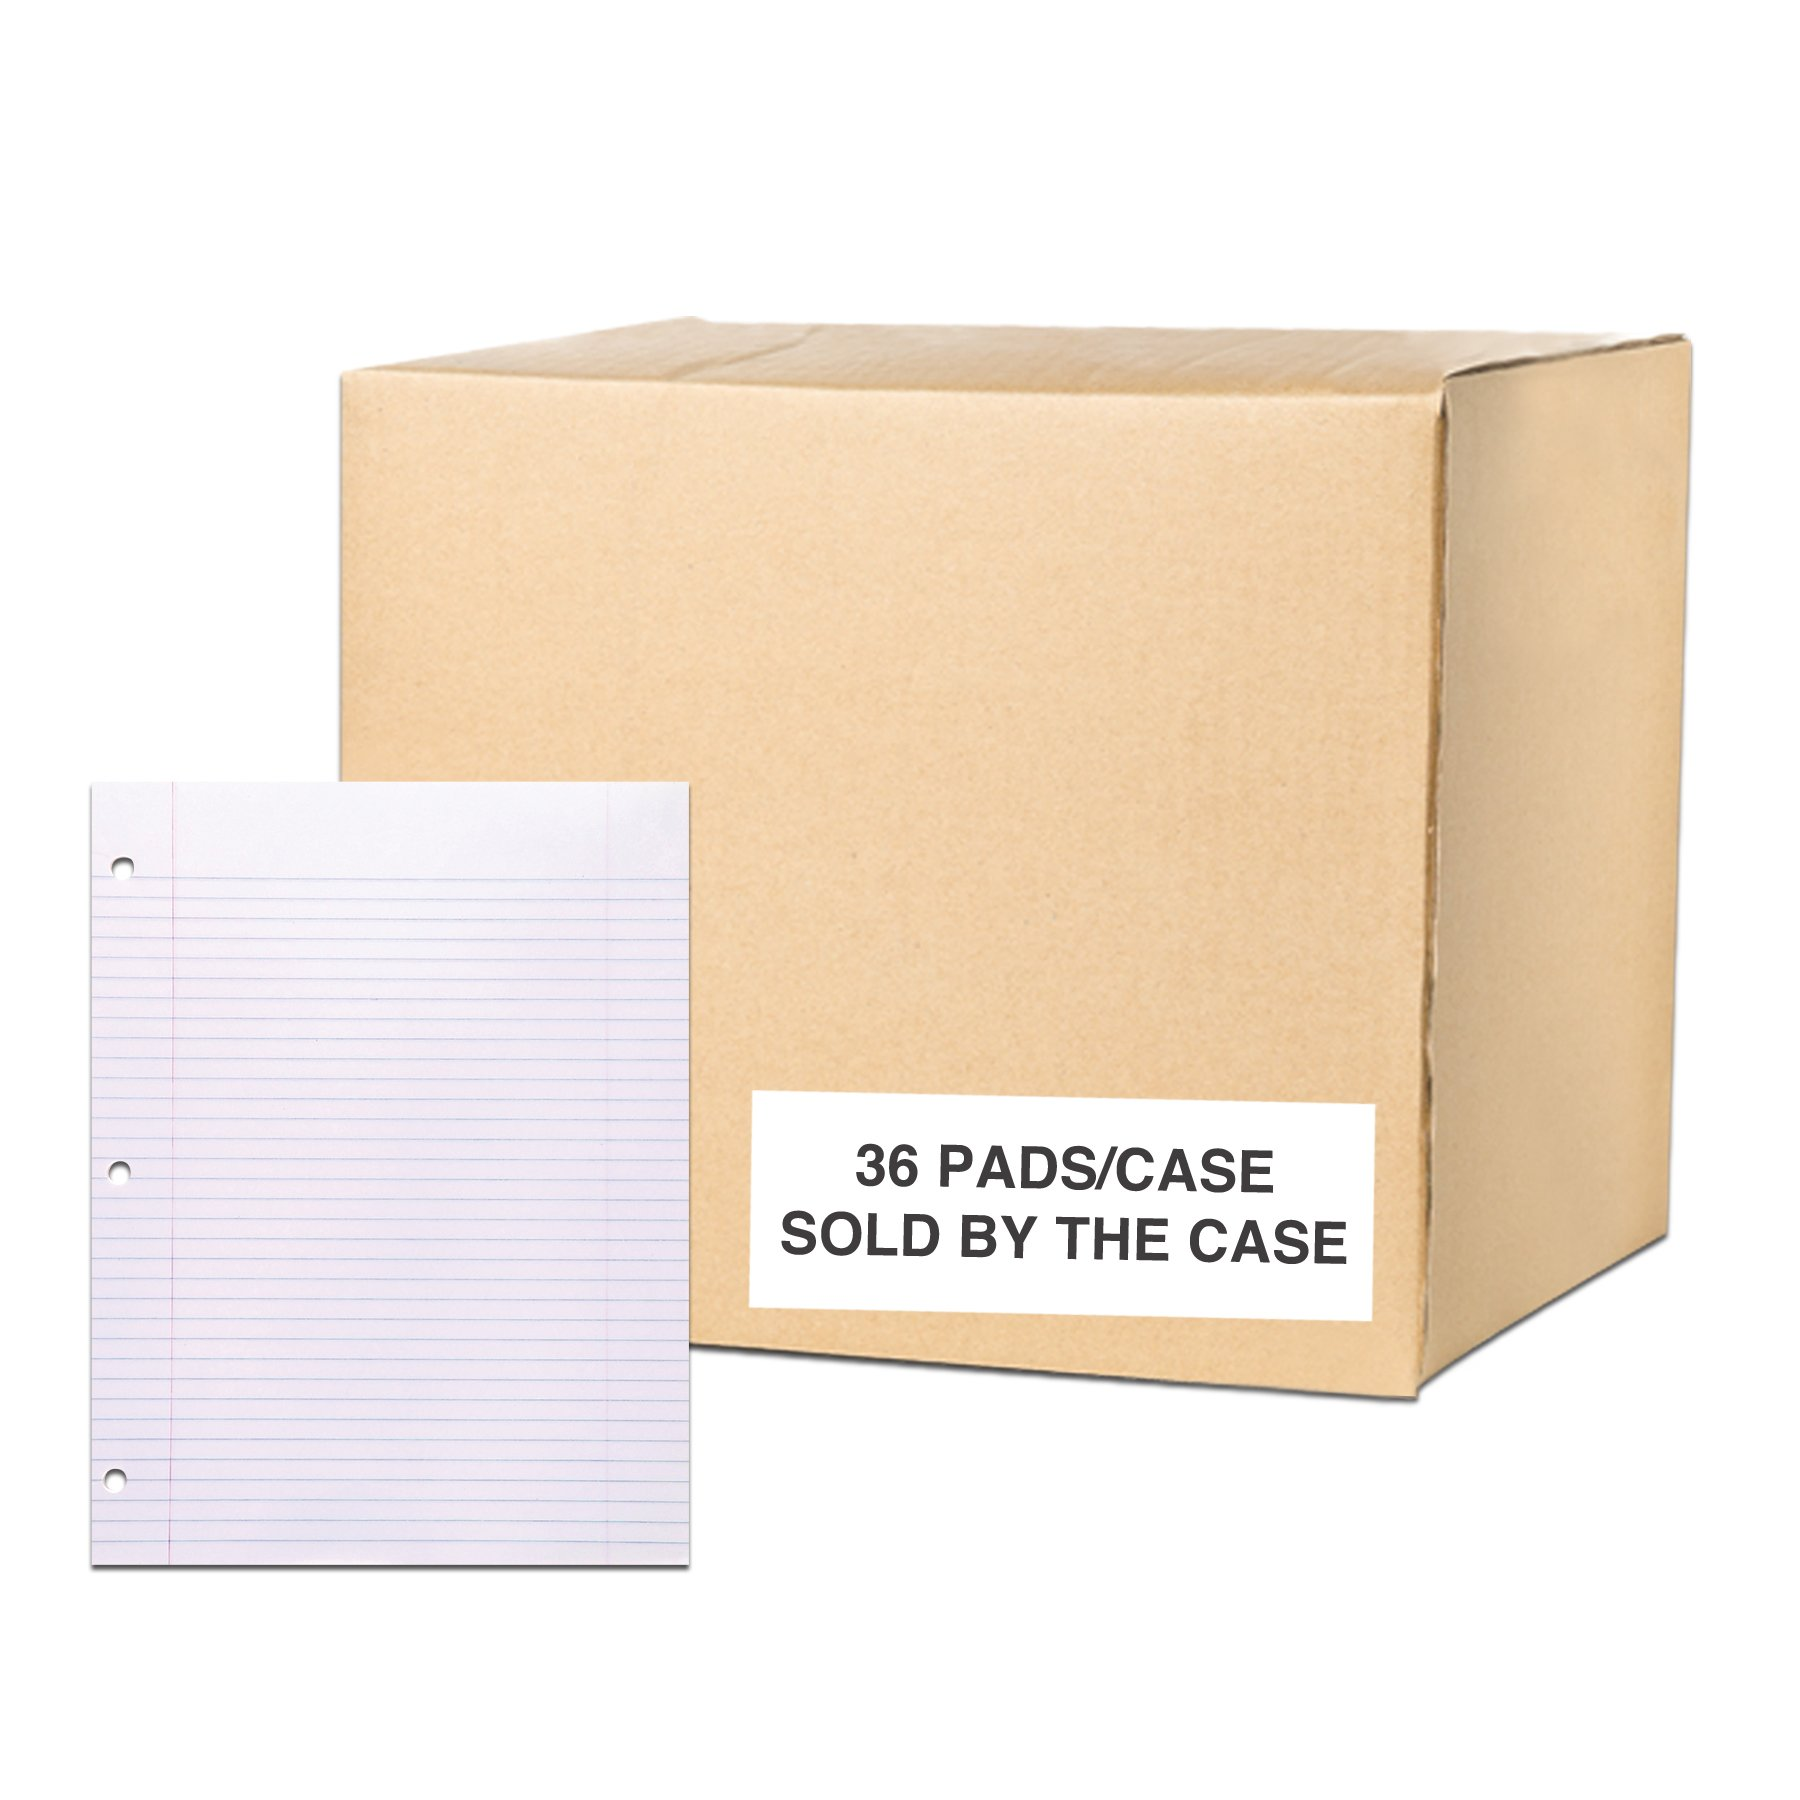 Case of 36 Gummed Pads, 8.5''x11'', 50 sheets 15# White Paper Per Pad, 12 Pads Per pack, 3-Hole Punched, glued, College Ruled W/Margin